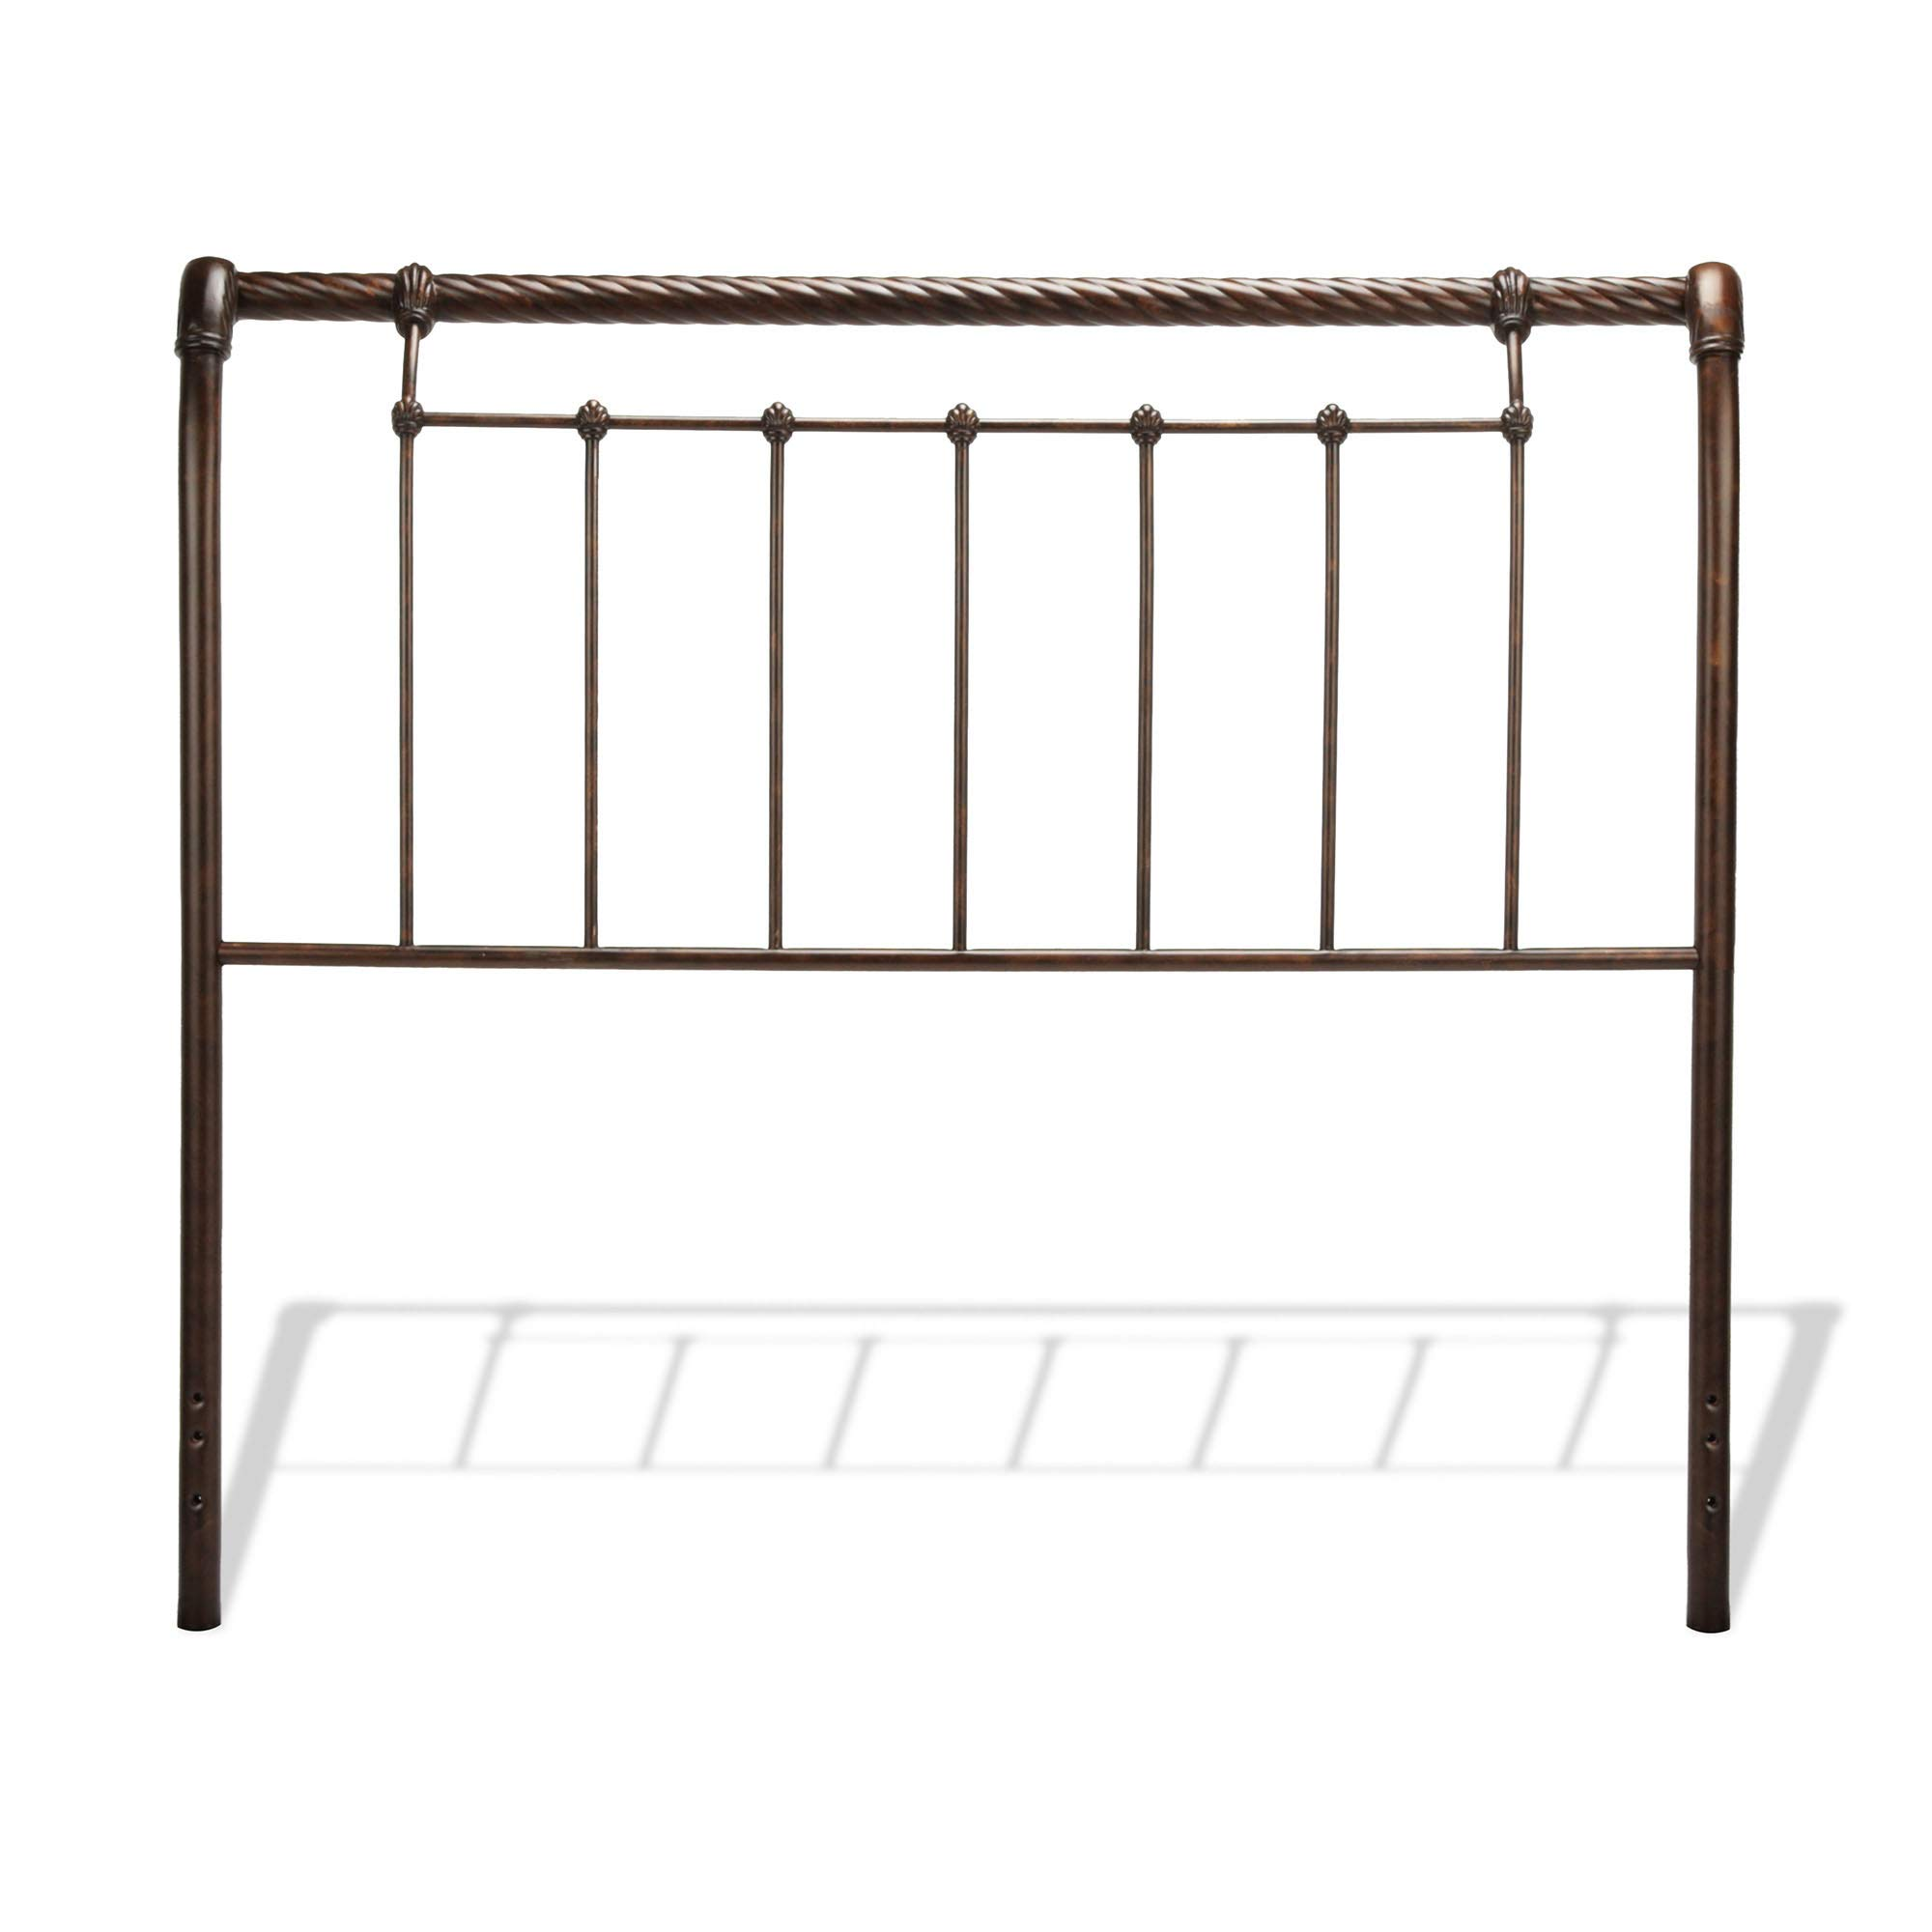 Leggett & Platt Legion Metal Sleigh-Styled Headboard Panel with Twisted Rope Top Rail, Ancient Gold Finish, King by Fashion Bed Group